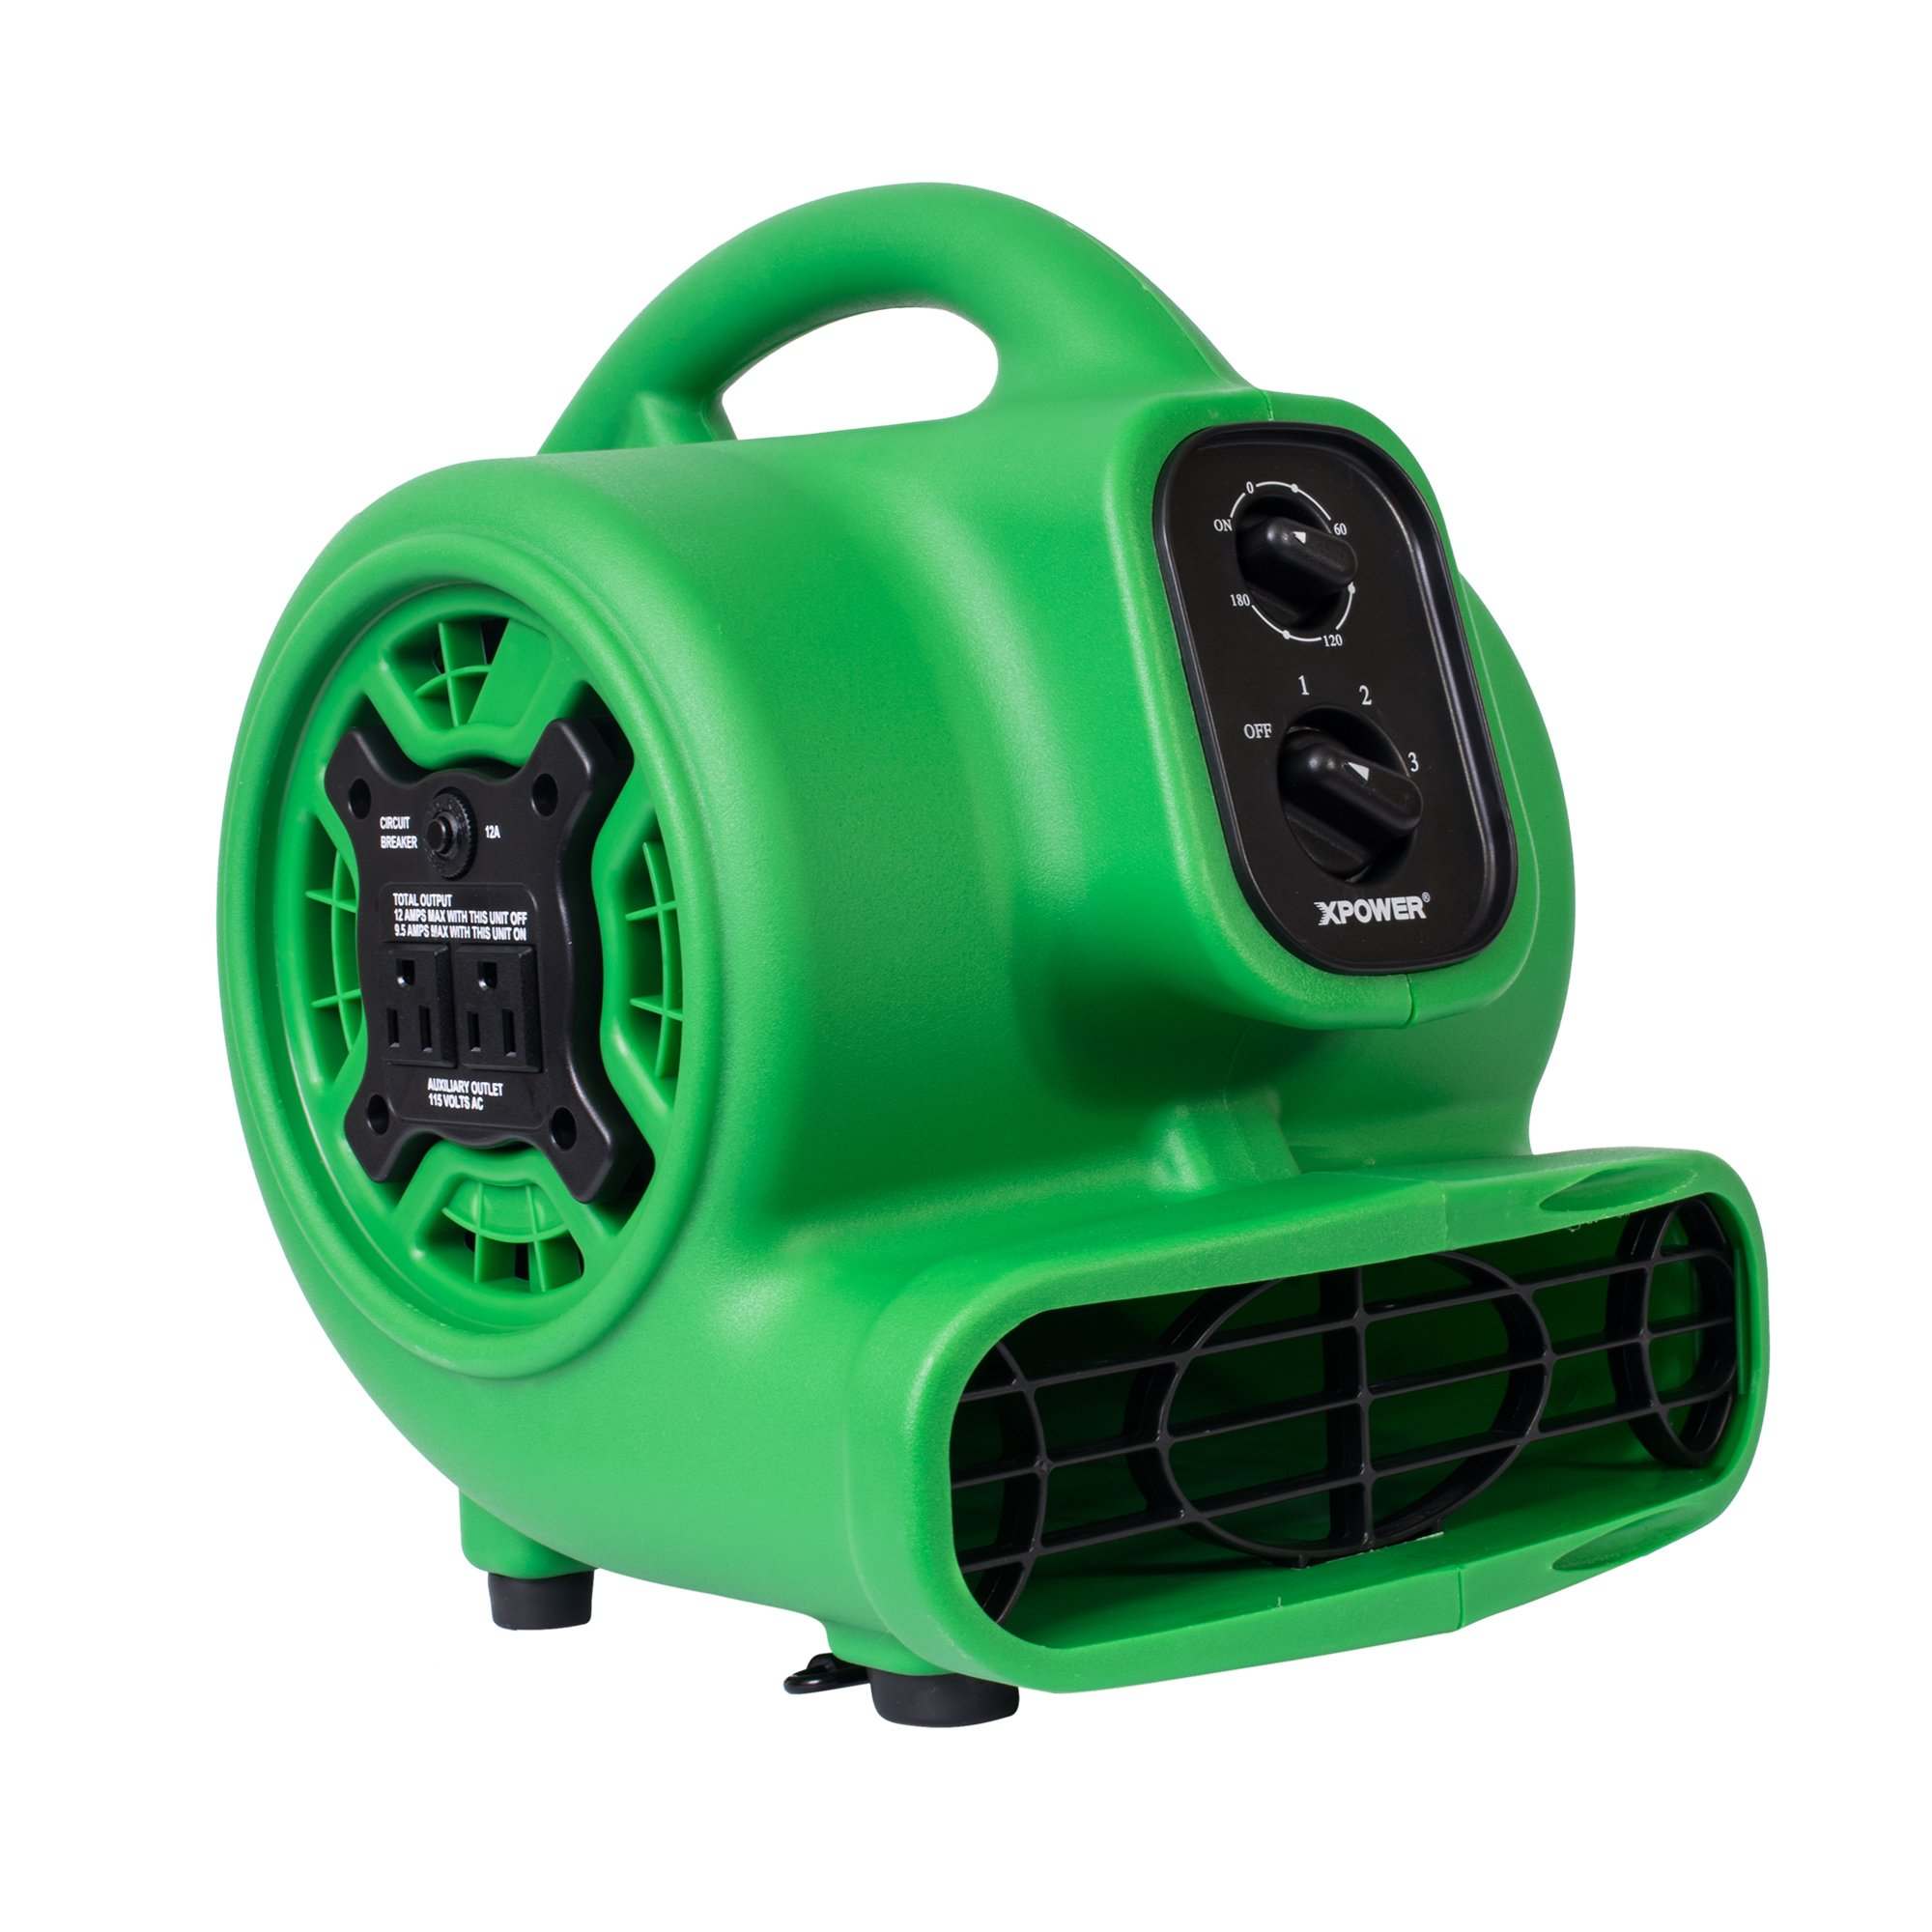 XPOWER 848025023419 1/5 hp 800 CFM 2.3 Amp 4 Positions 3 Speeds Mini Air Mover with Daisy Chain & 3-Hour Timer, Green